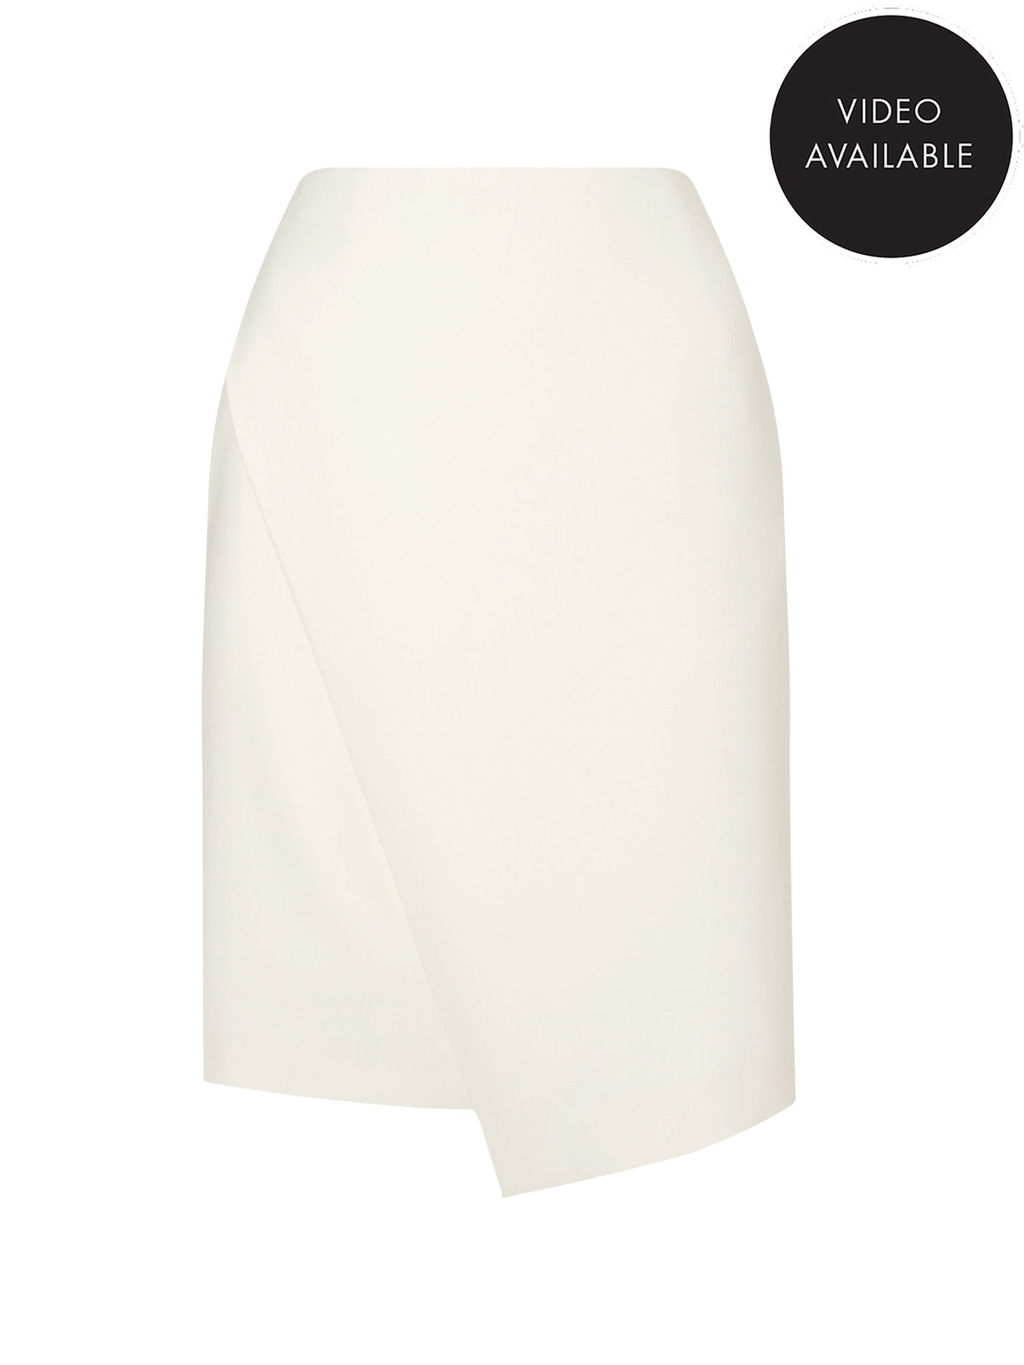 Jeff Banks Ivory Wrap Skirt - pattern: plain; style: wrap/faux wrap; fit: tailored/fitted; waist: high rise; predominant colour: ivory/cream; occasions: evening; length: just above the knee; fibres: polyester/polyamide - stretch; texture group: crepes; pattern type: fabric; season: s/s 2016; wardrobe: event